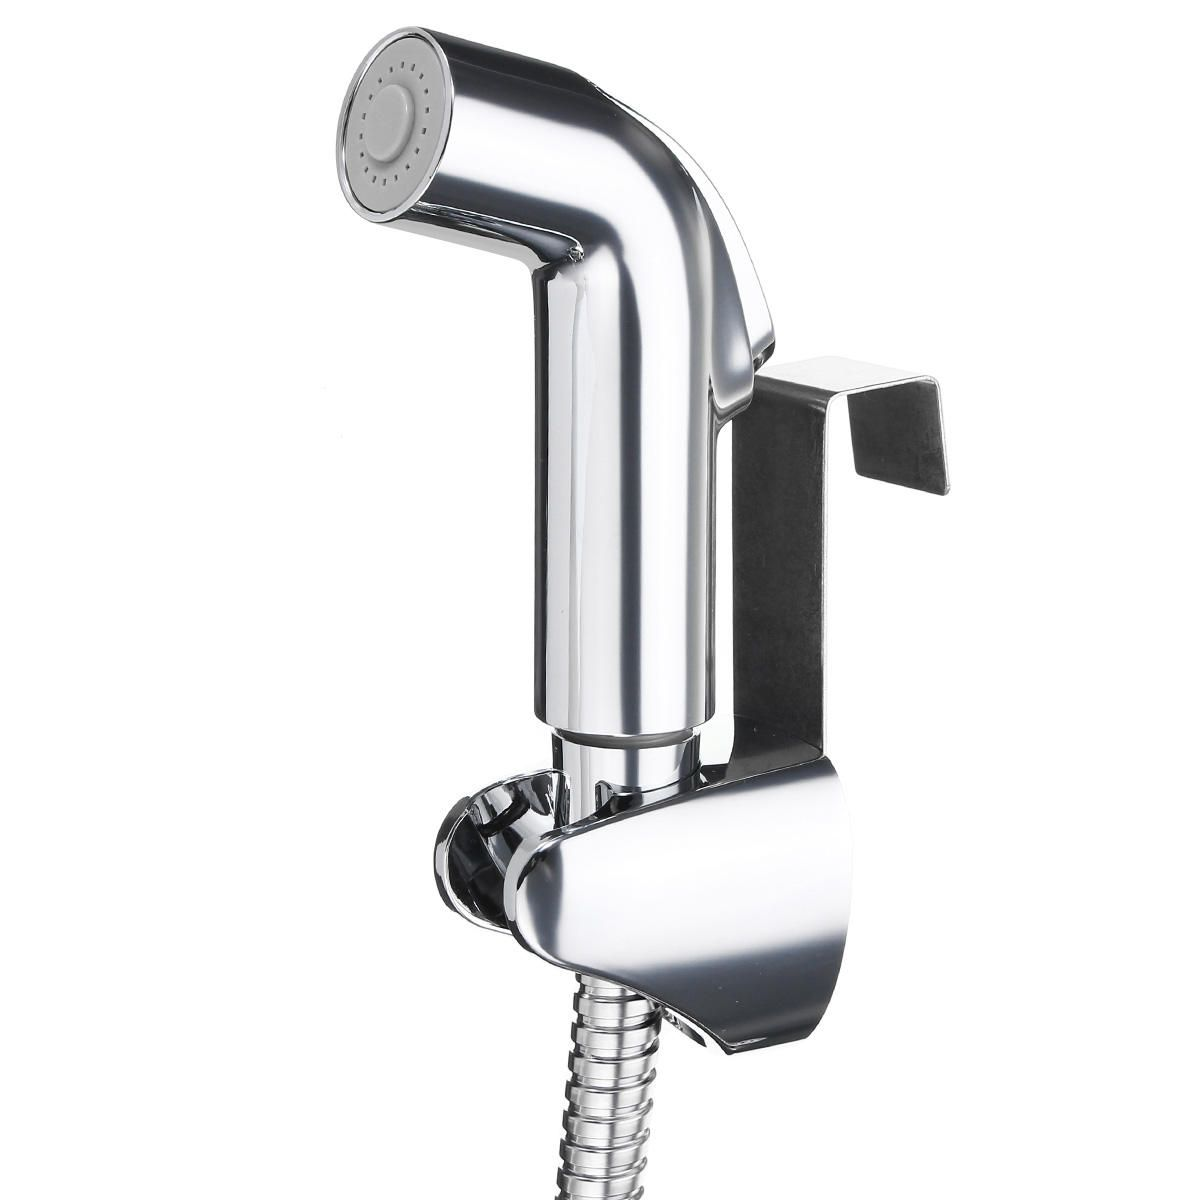 DJK US$16.39 Toilet Cleaning Spray Nozzle With A Hose And Toilet Flushing Head Socket Partner